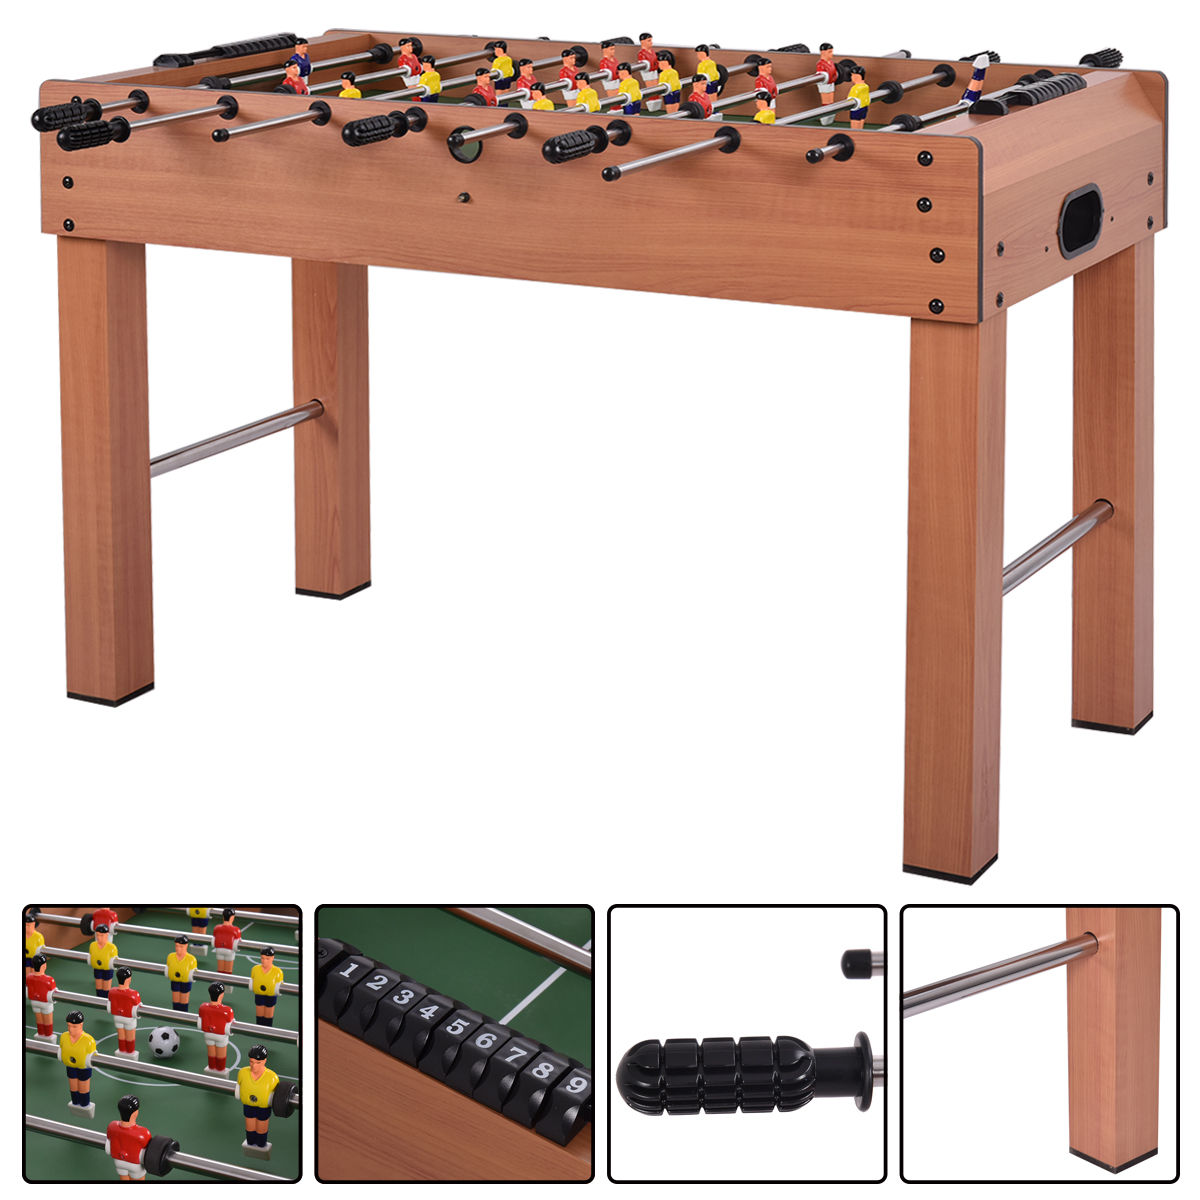 Costway 48'' Foosball Table Competition Game Soccer Arcade Sized Football Sports Indoor by Costway